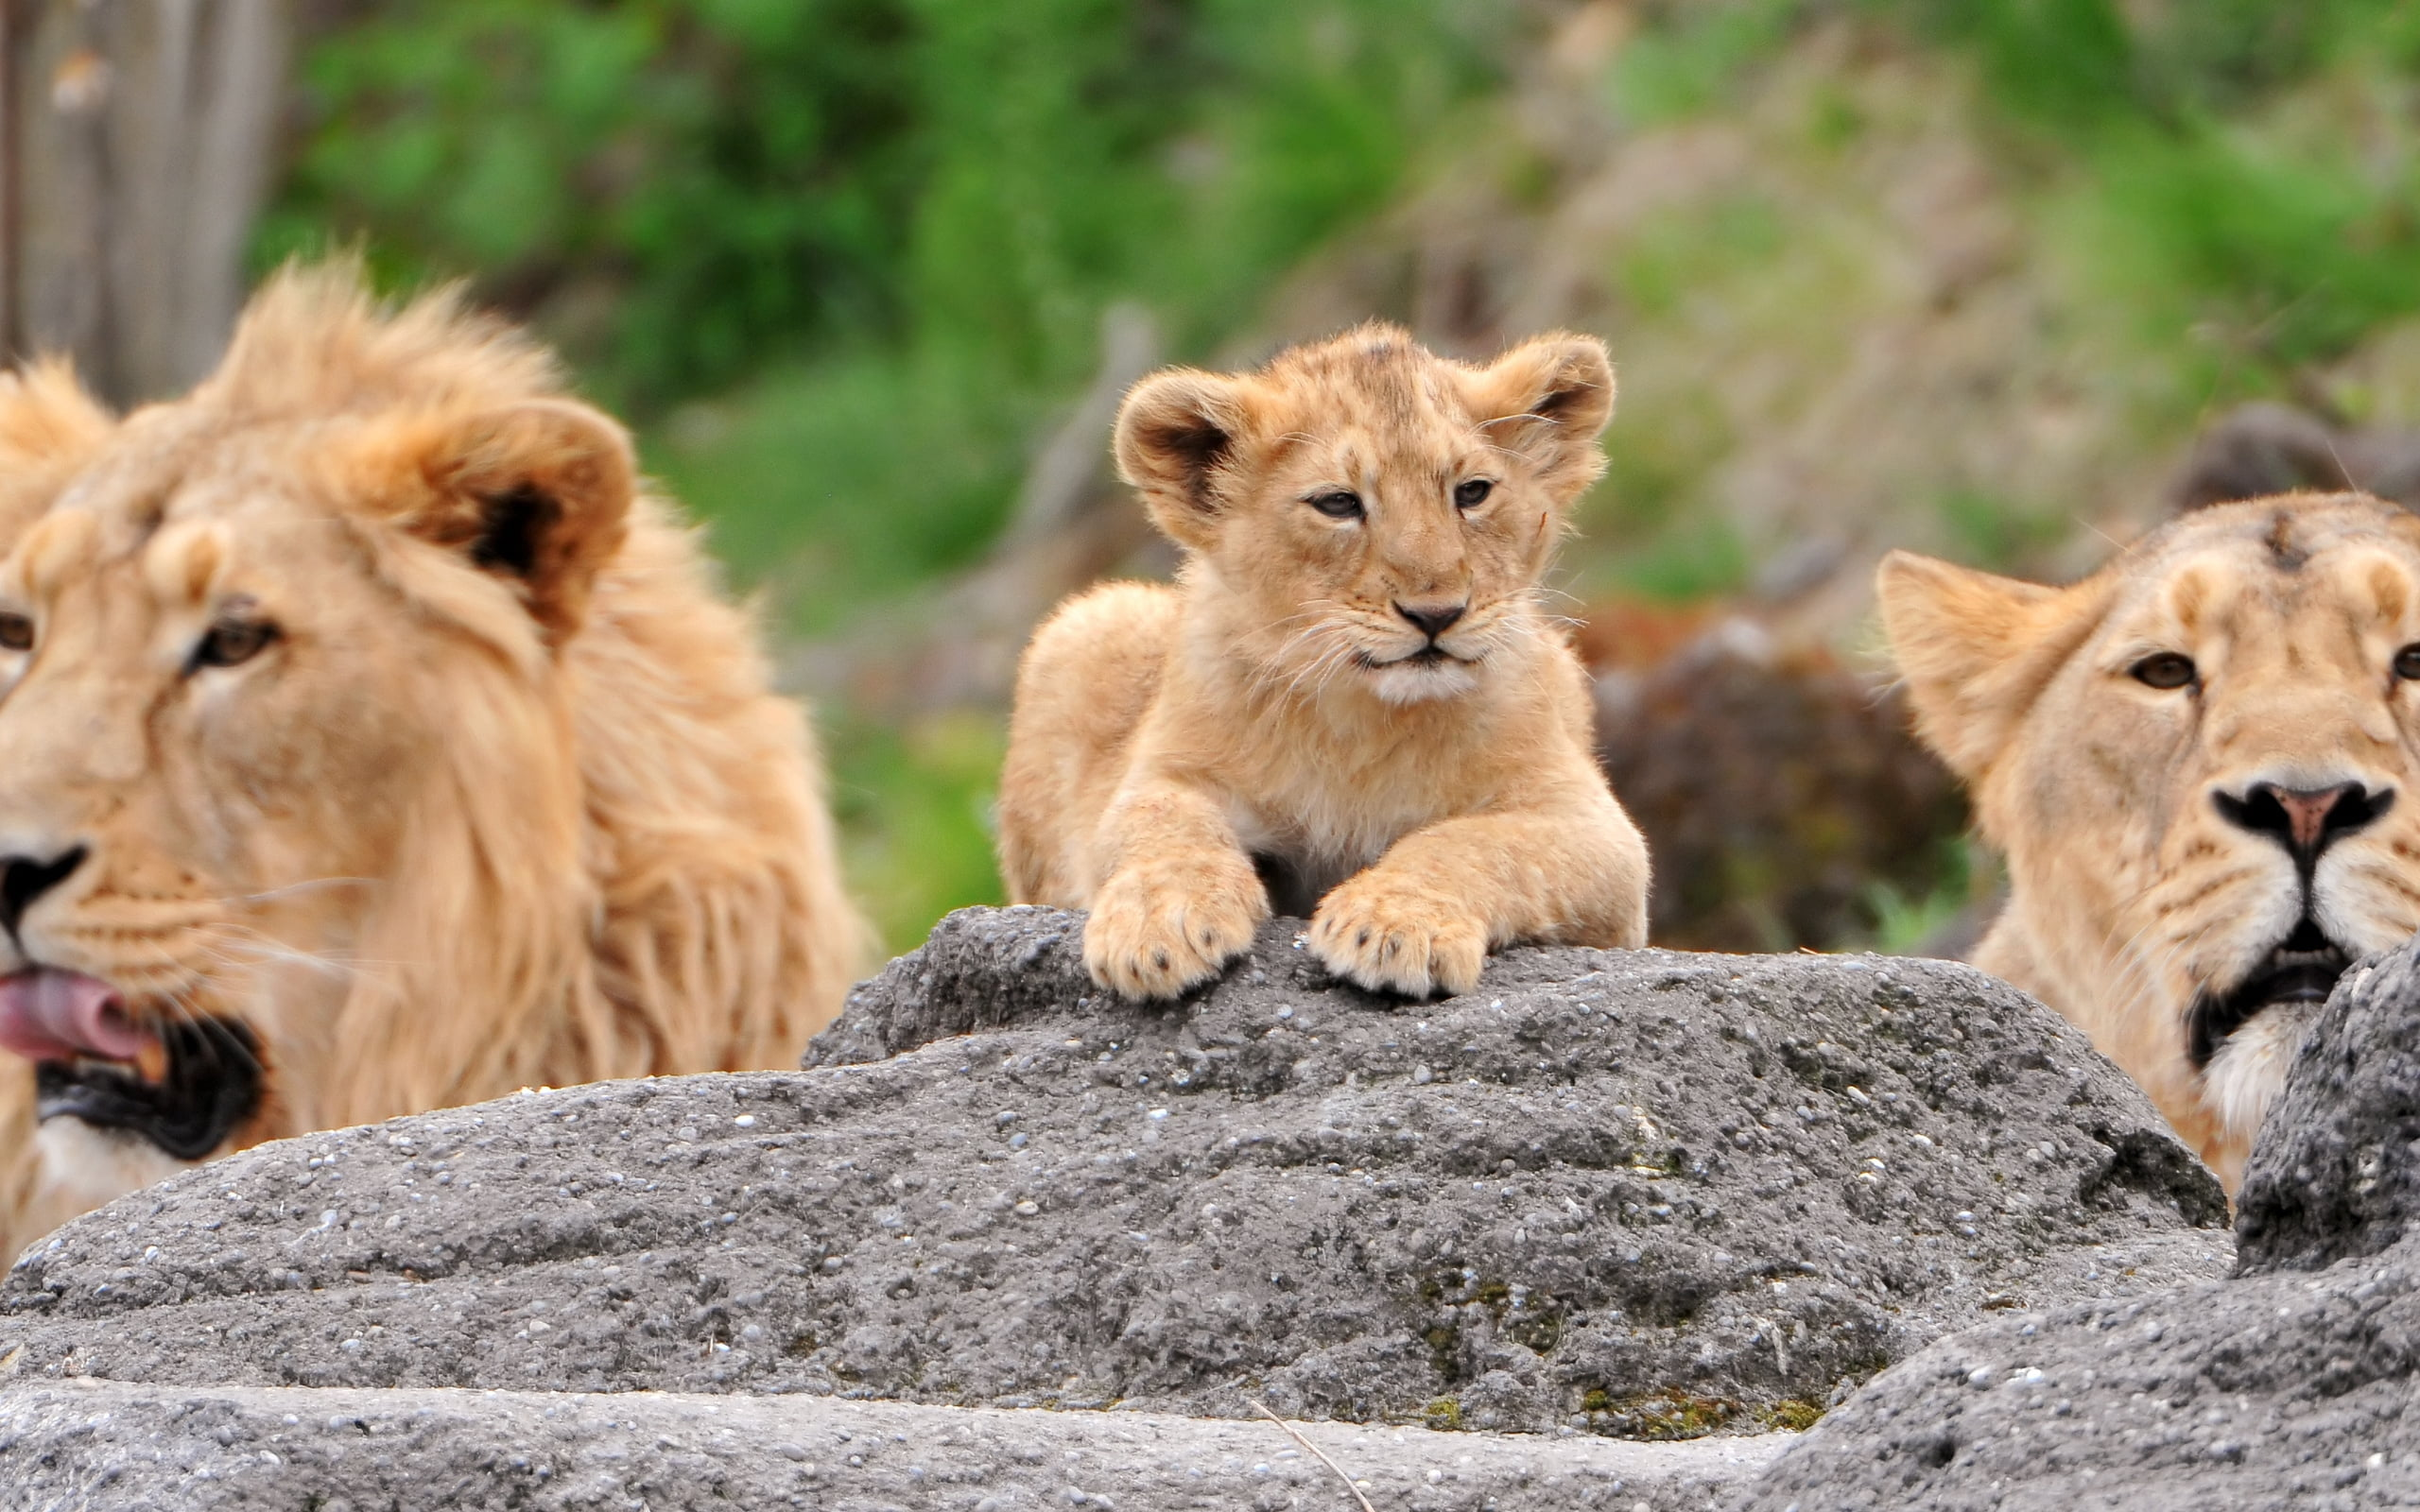 Quotes Wallpaper For Iphone 5c Brown Lion Lioness And Cub On Grey Rock At Daytime Hd